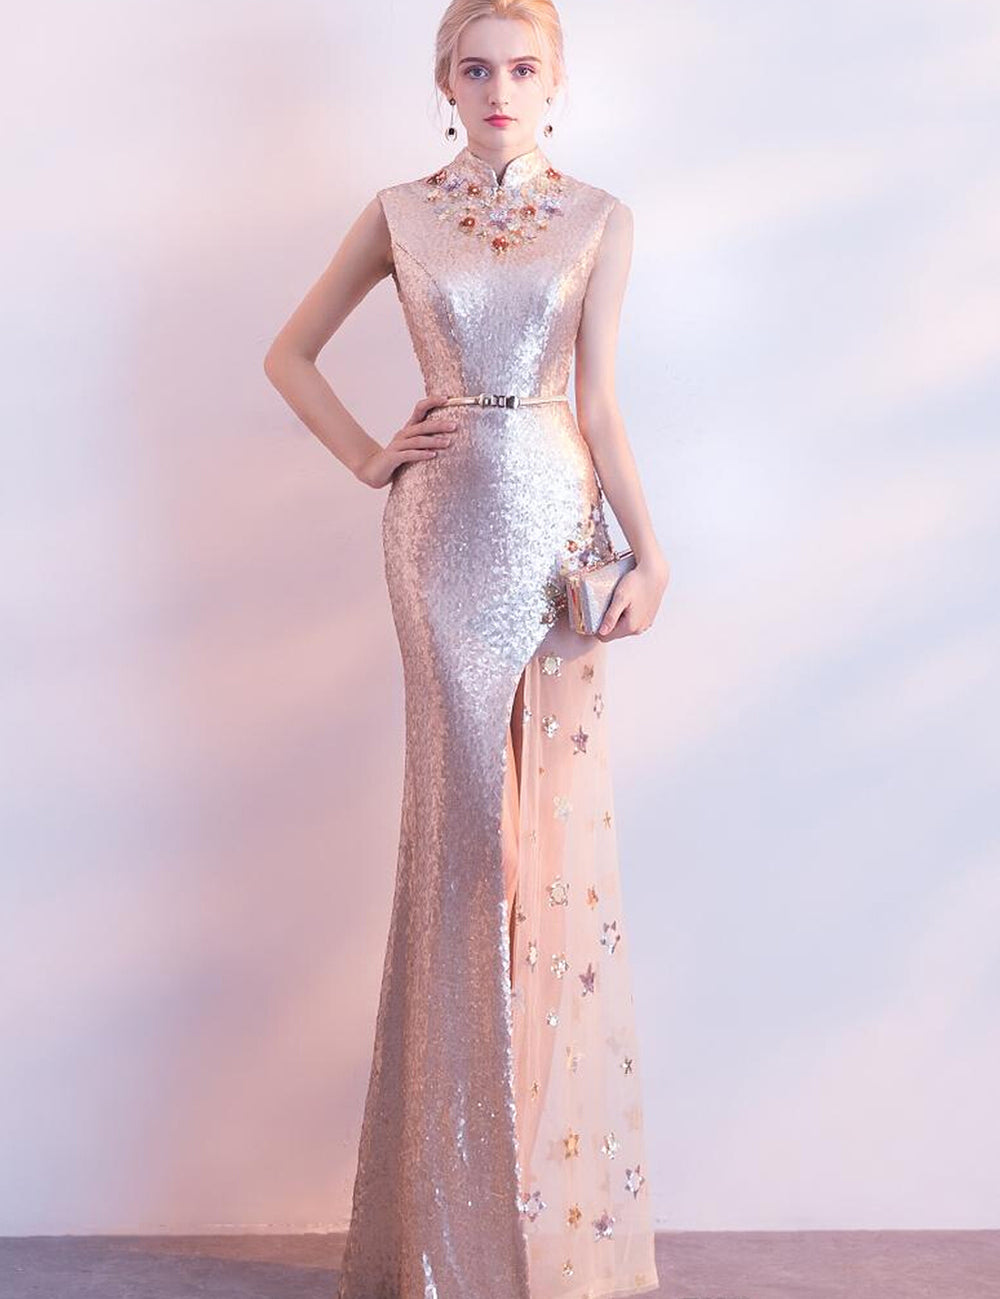 3c1cdbab19c6 Champagne Lace Sequined Stand Collar Long Slim Mermaid Split Dress –  Ladywearing.com